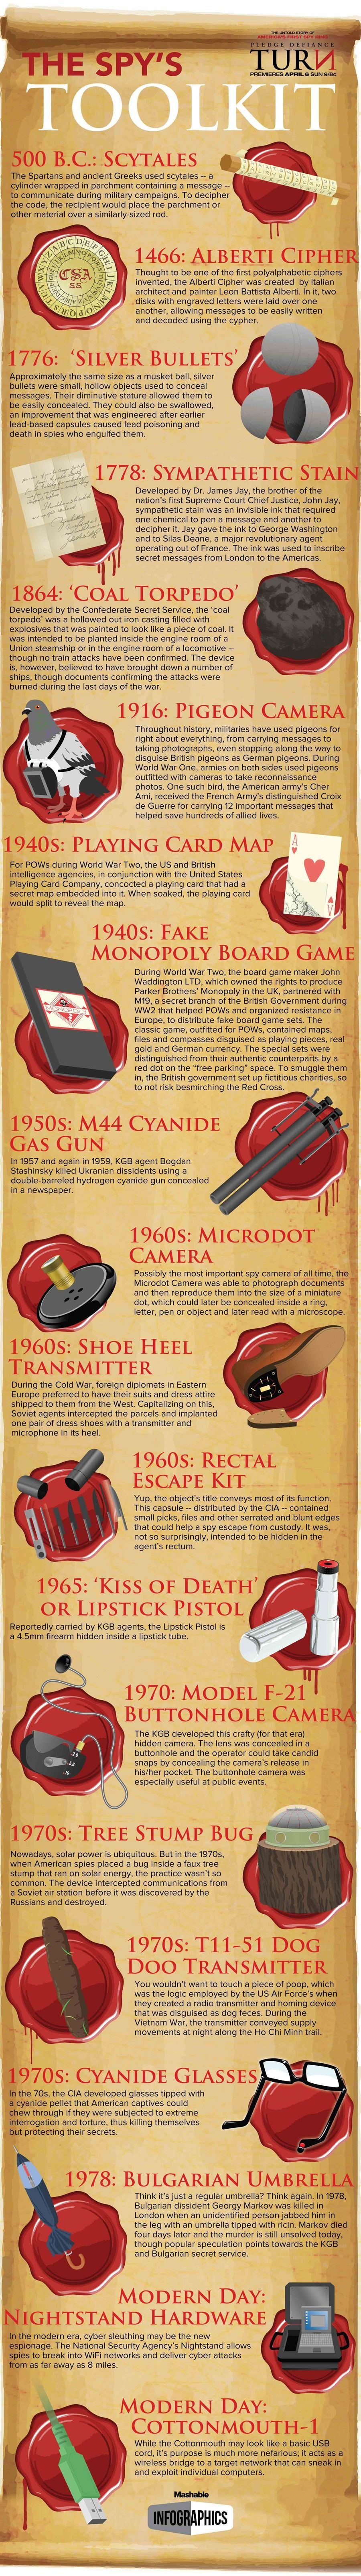 Spy's Toolkit -- very useful if you're writing historical or spy #infographic